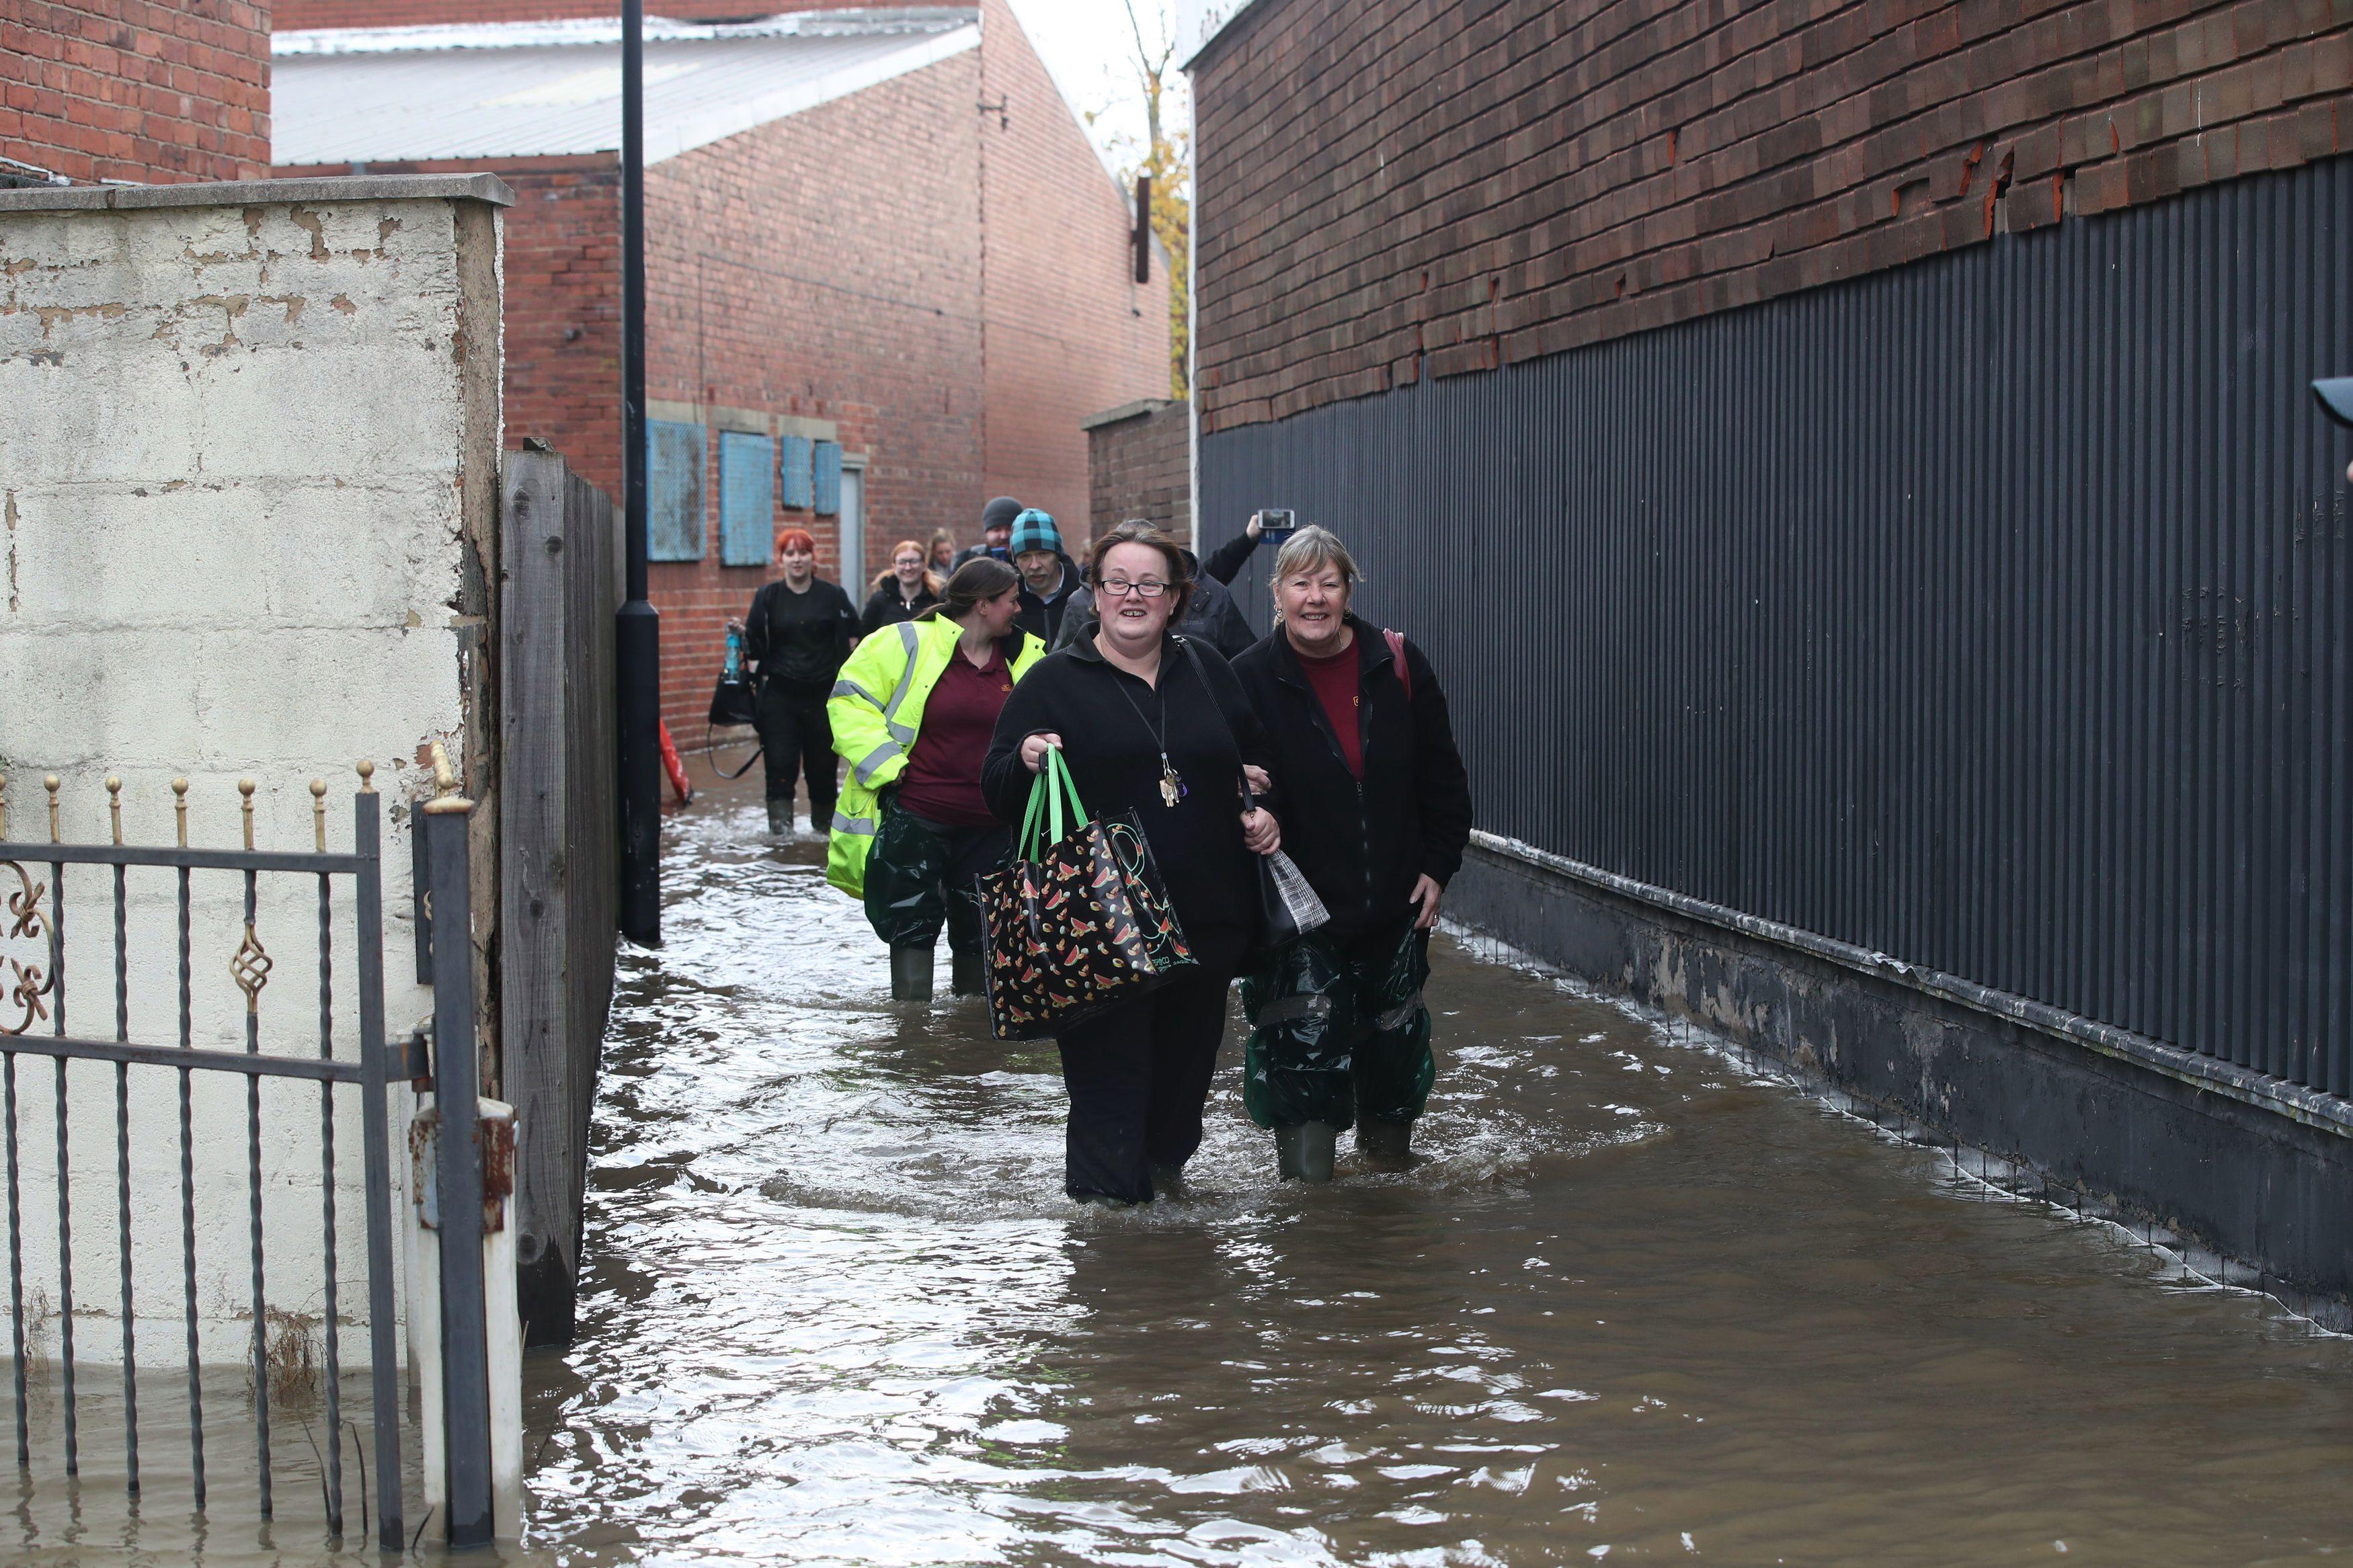 Workers walk through flood water as they in Doncaster